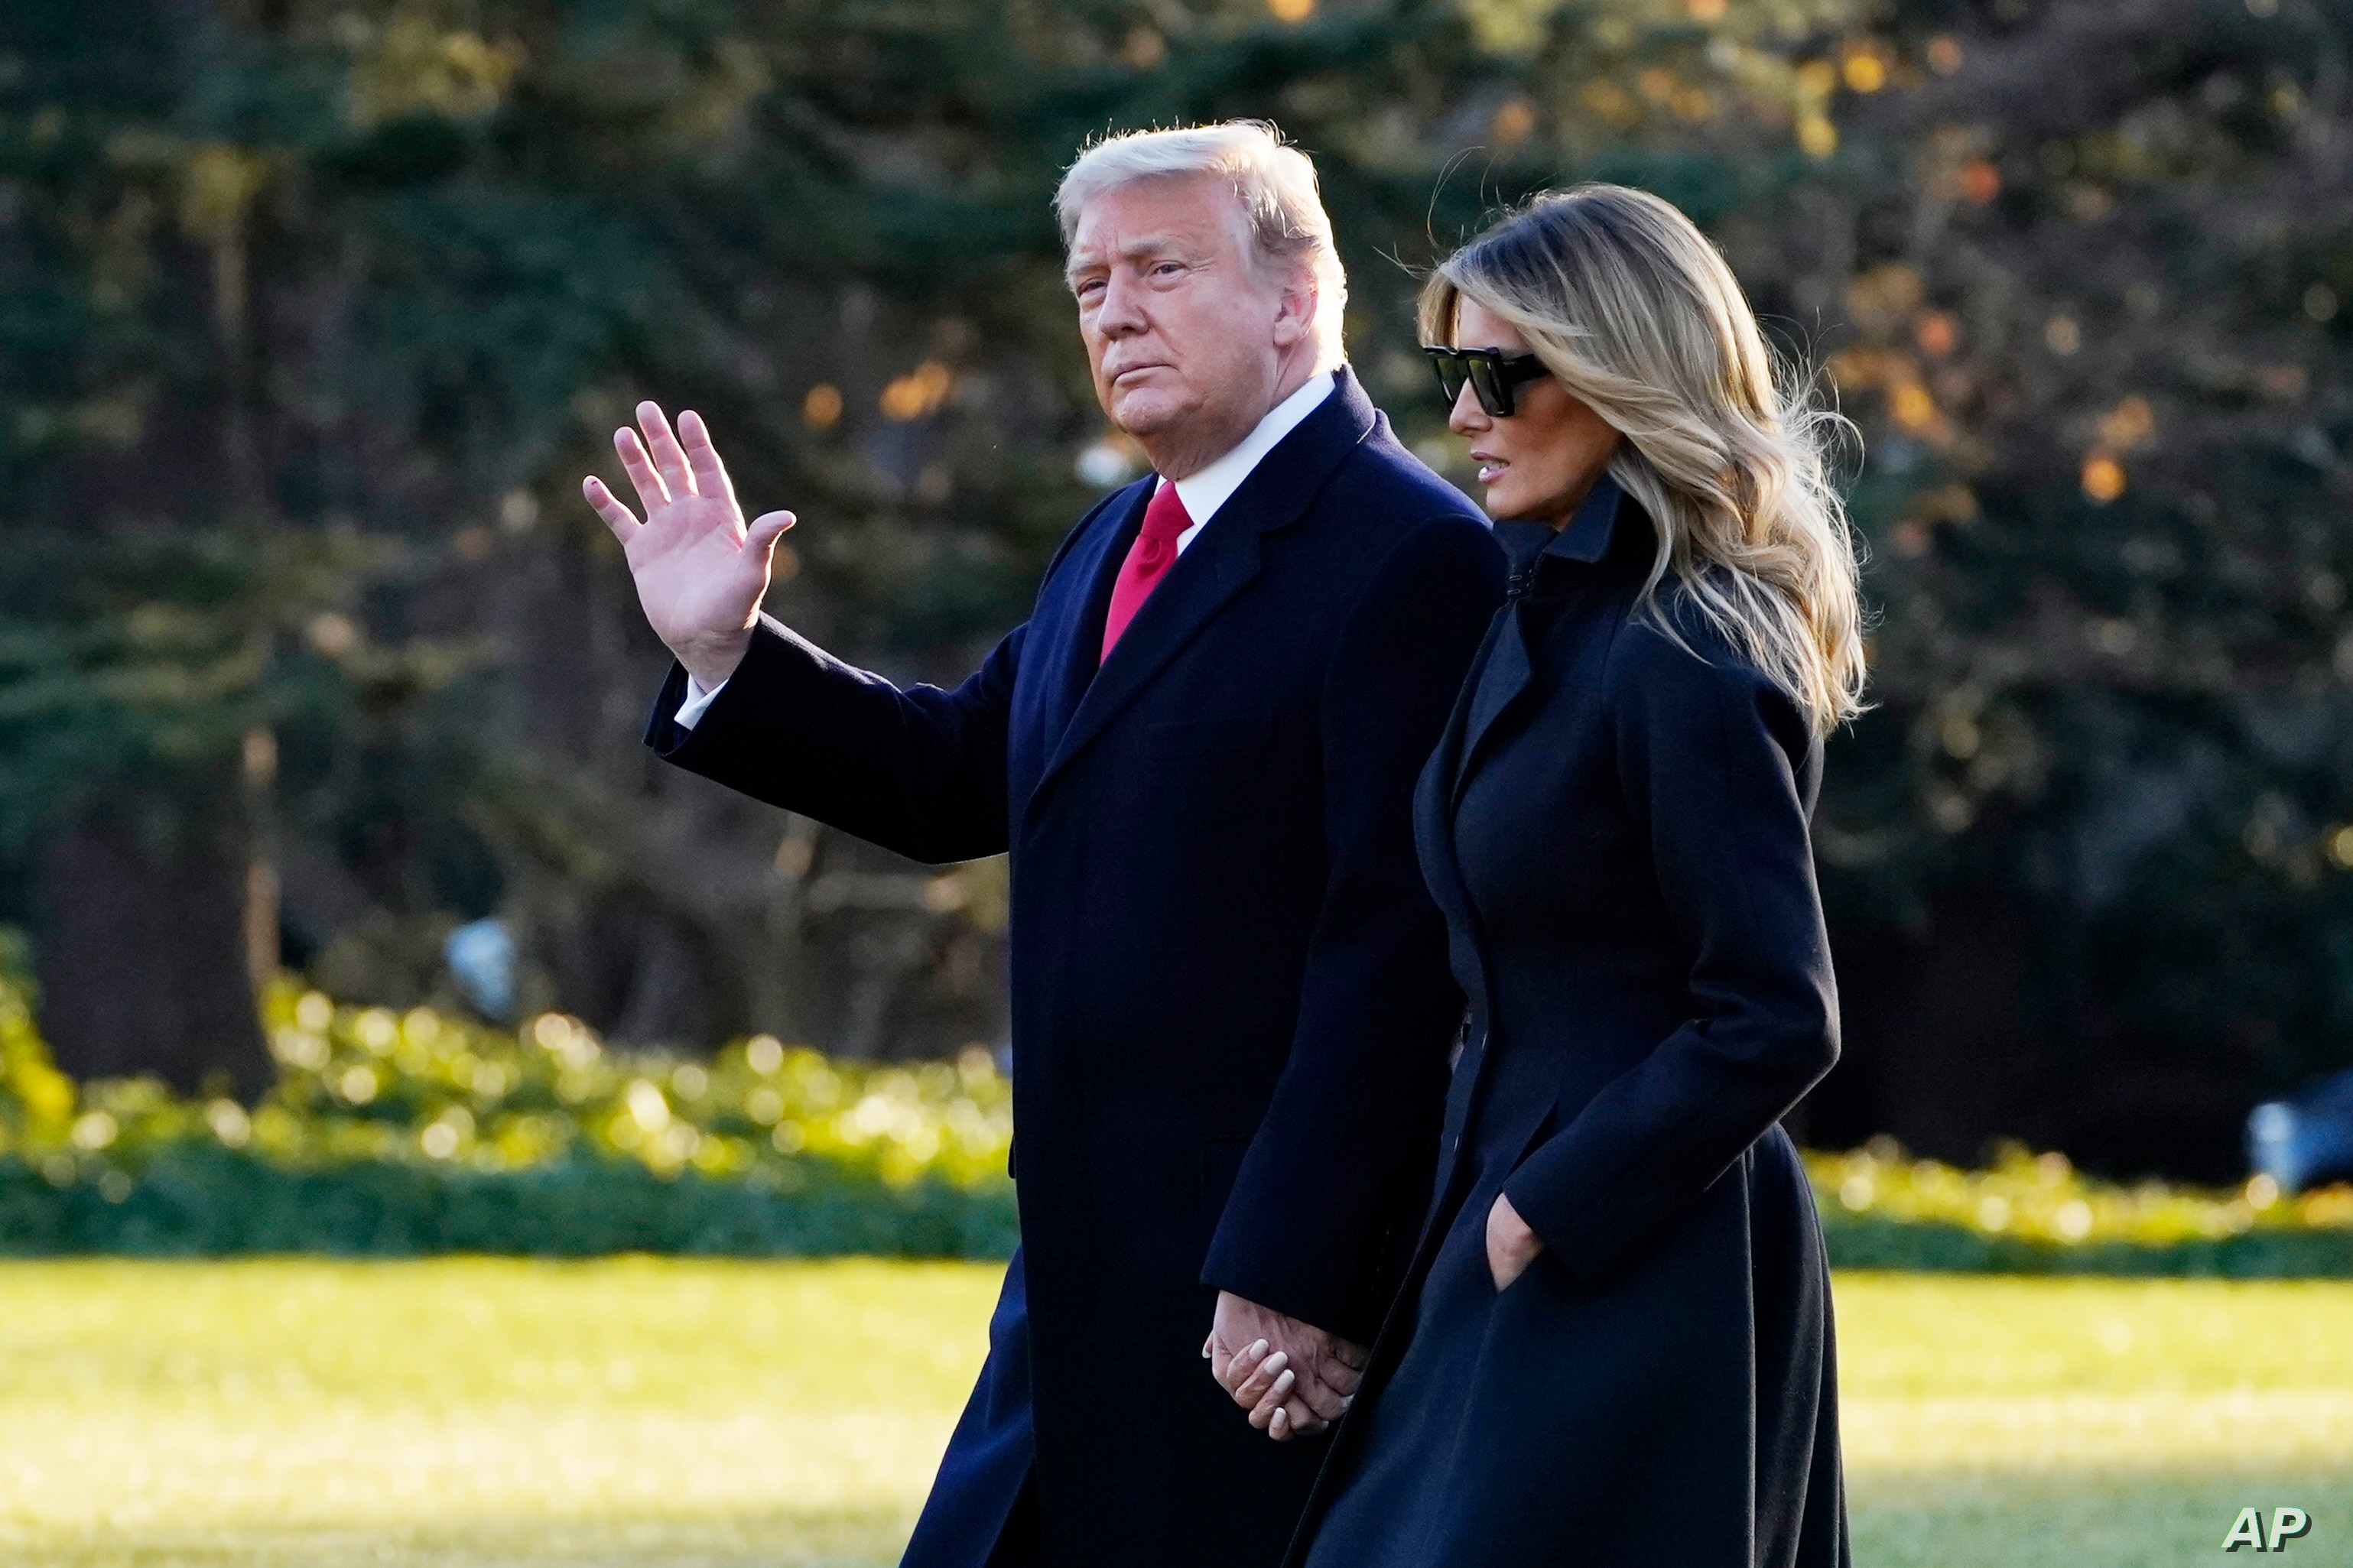 Trump Signs Spending Bill Pandemic Aid Package Voice Of America English